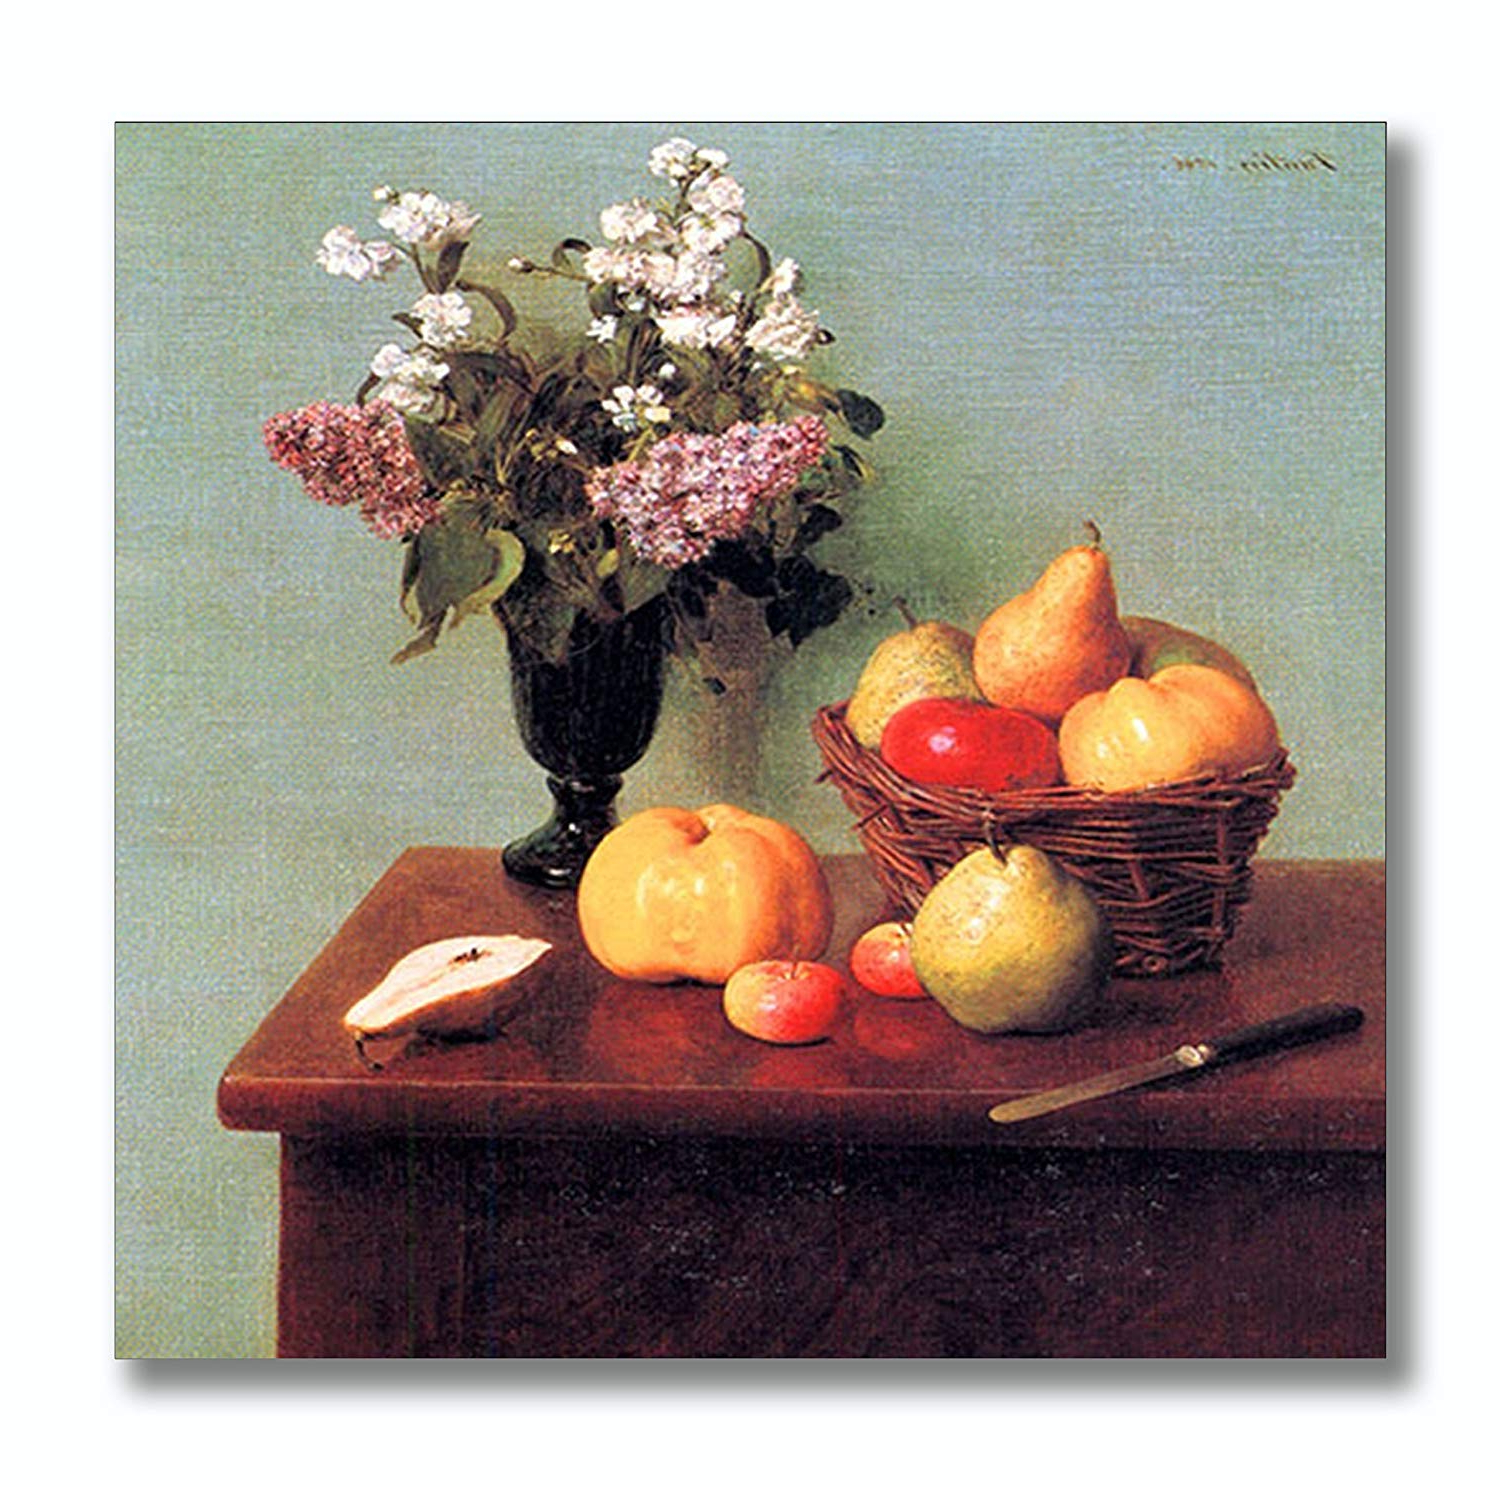 Popular Latour Wall Decor Within Amazon: Latour #1 (Fantin) Aluminum Metal Photo Print Wall Art (View 16 of 20)